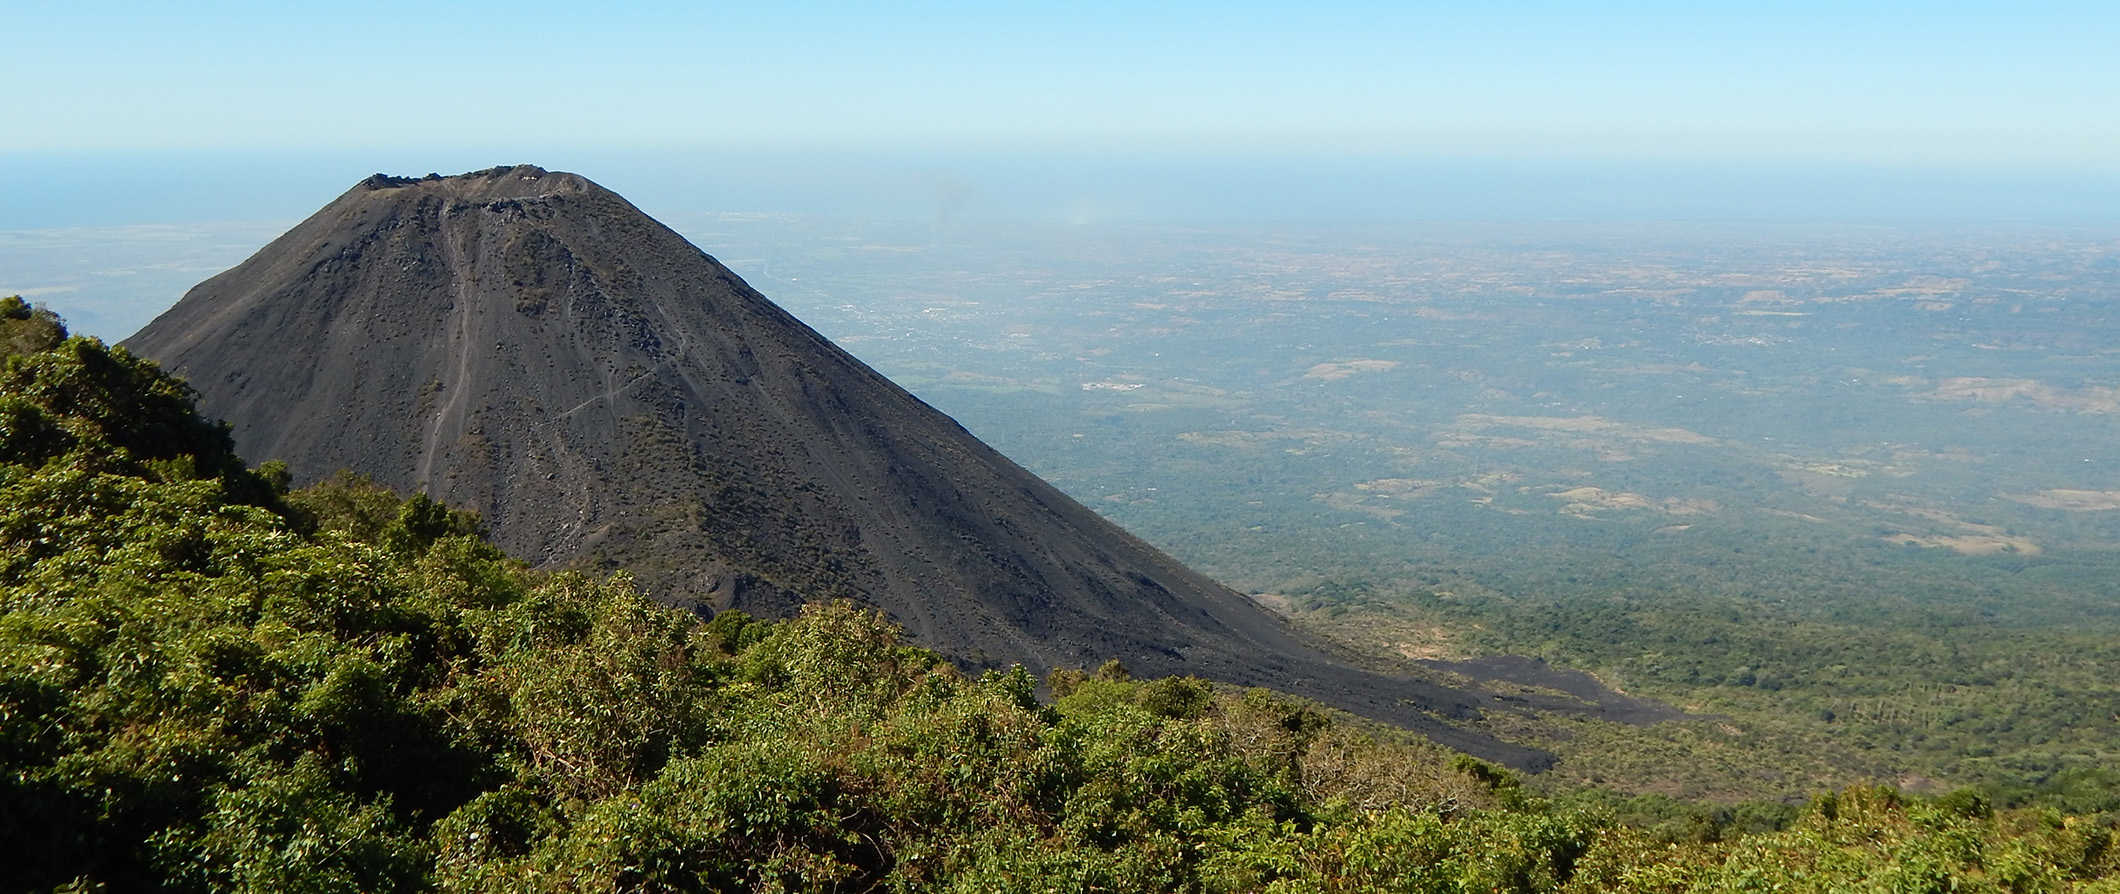 a volcano in El Salvador